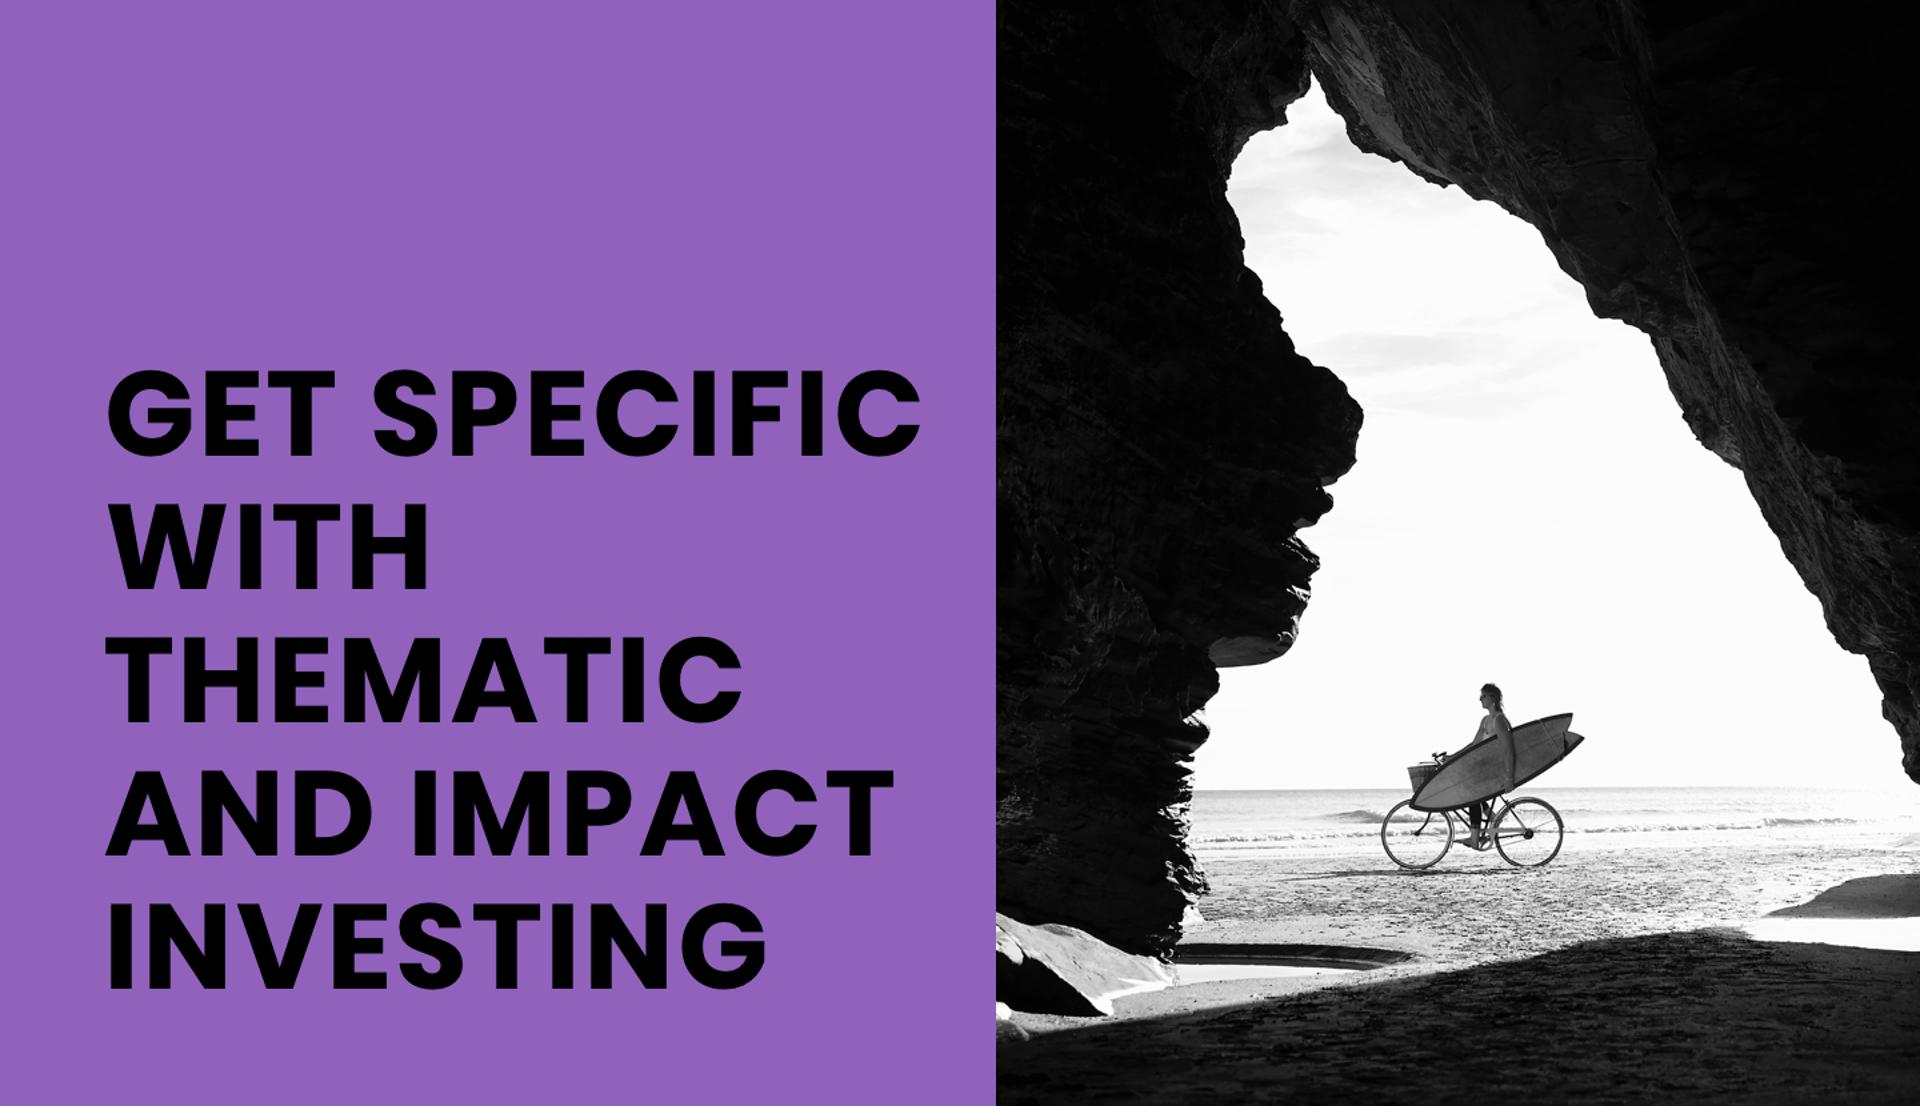 GET SPECIFIC WITH THEMATIC AND IMPACT INVESTING